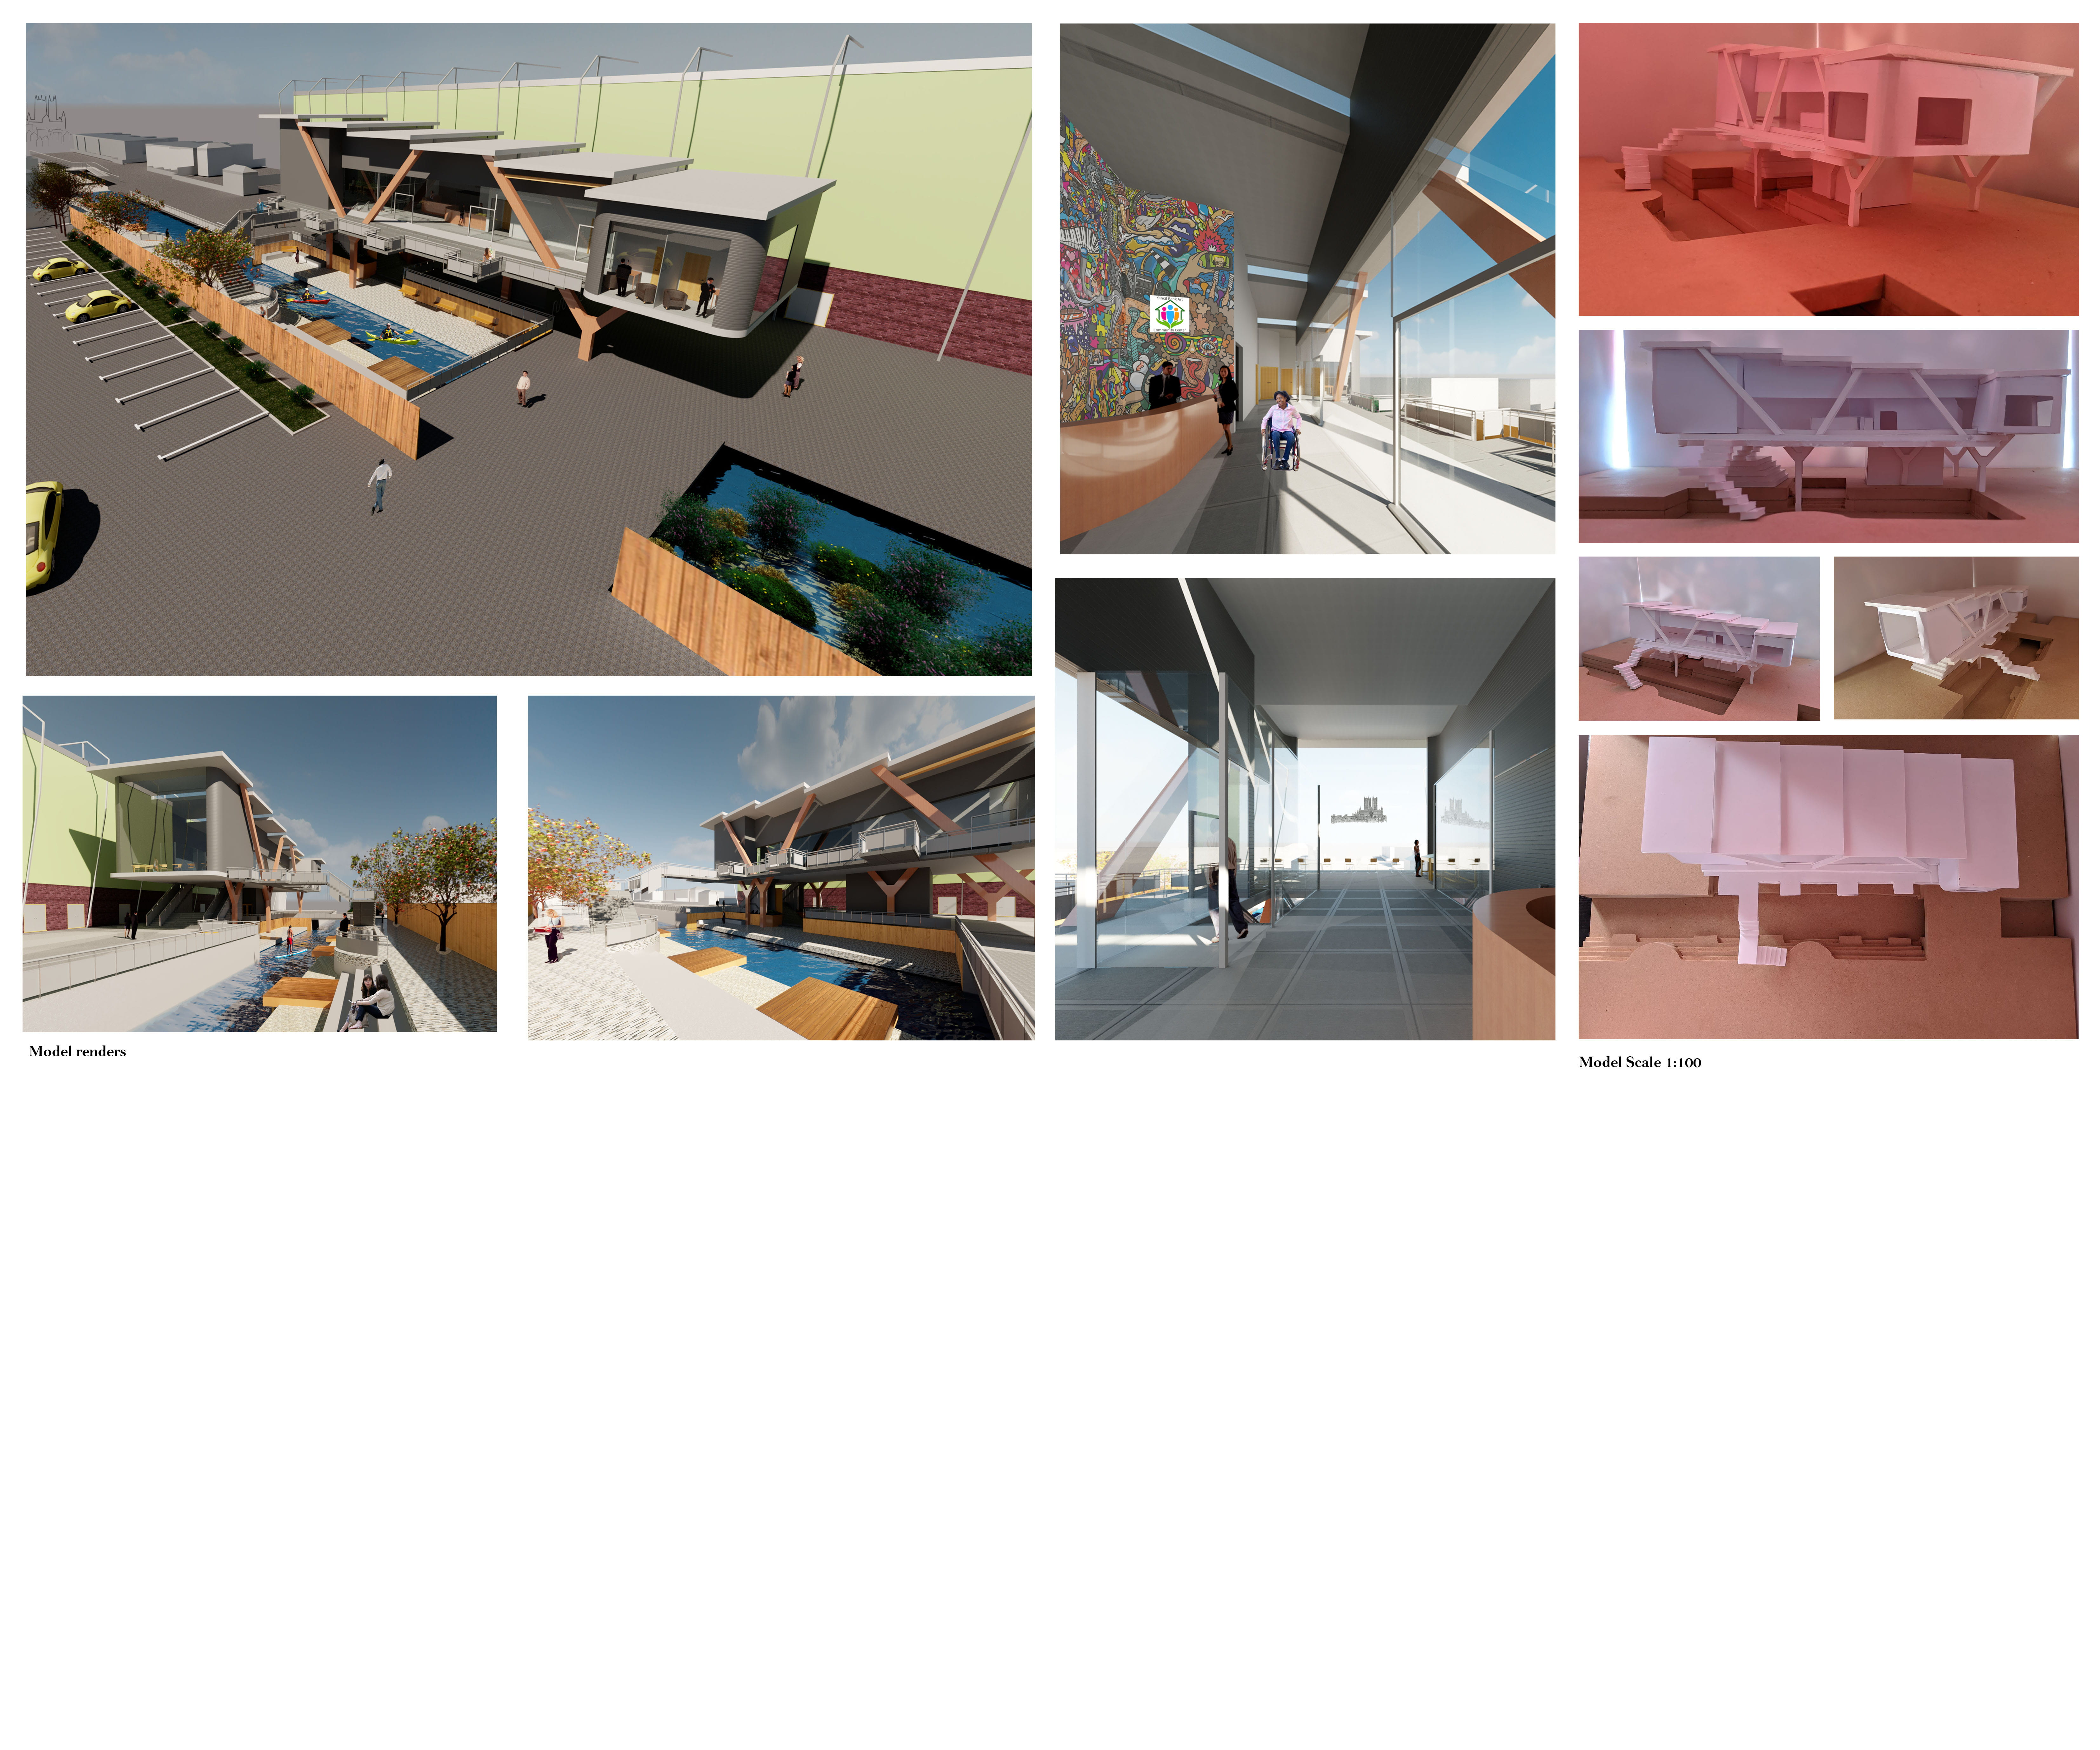 Final digital renders and 3D model of a building.